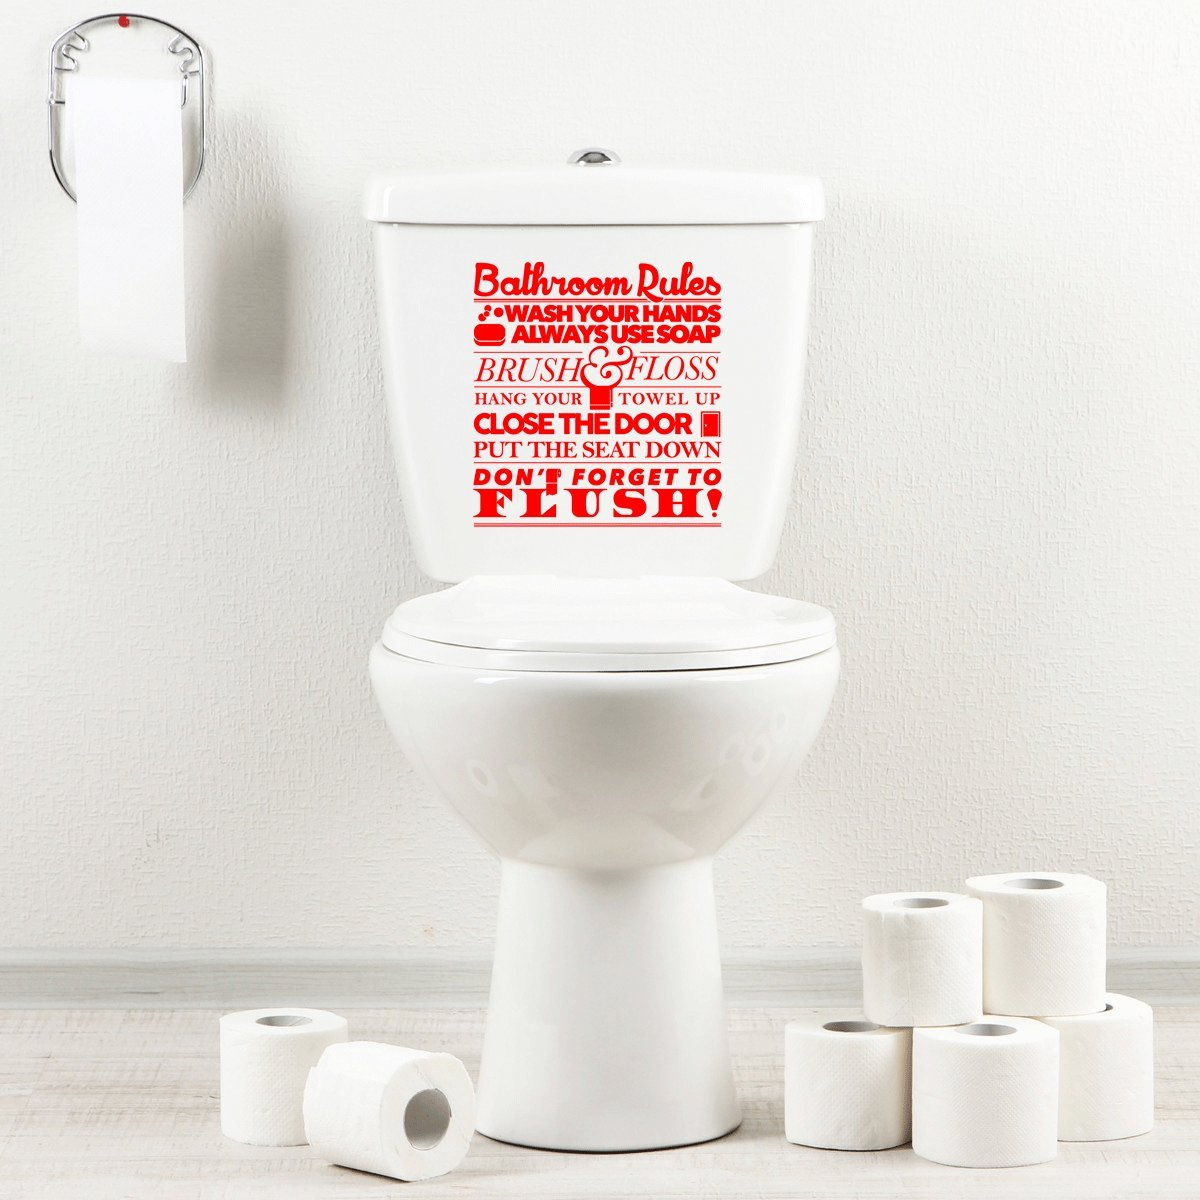 StickAny Bathroom Decal Series Bathroom Rules 1 Sticker for Toilet Bowl, Bath, Seat (Blue)